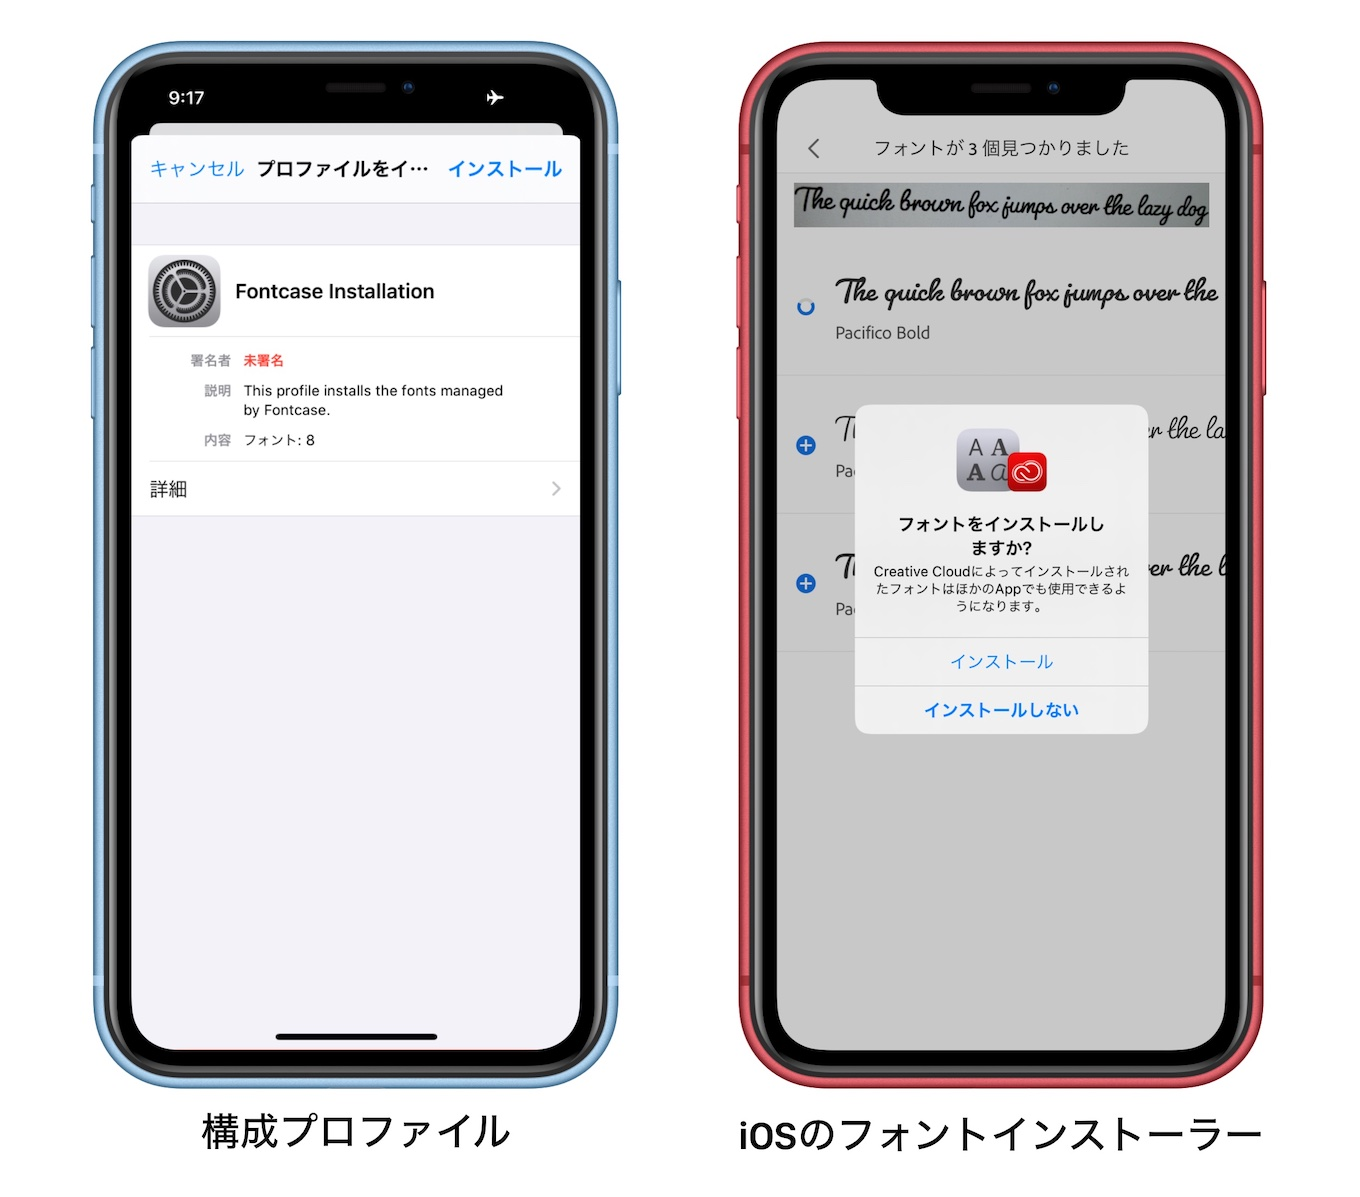 Font install Configuration Profile and iOS native